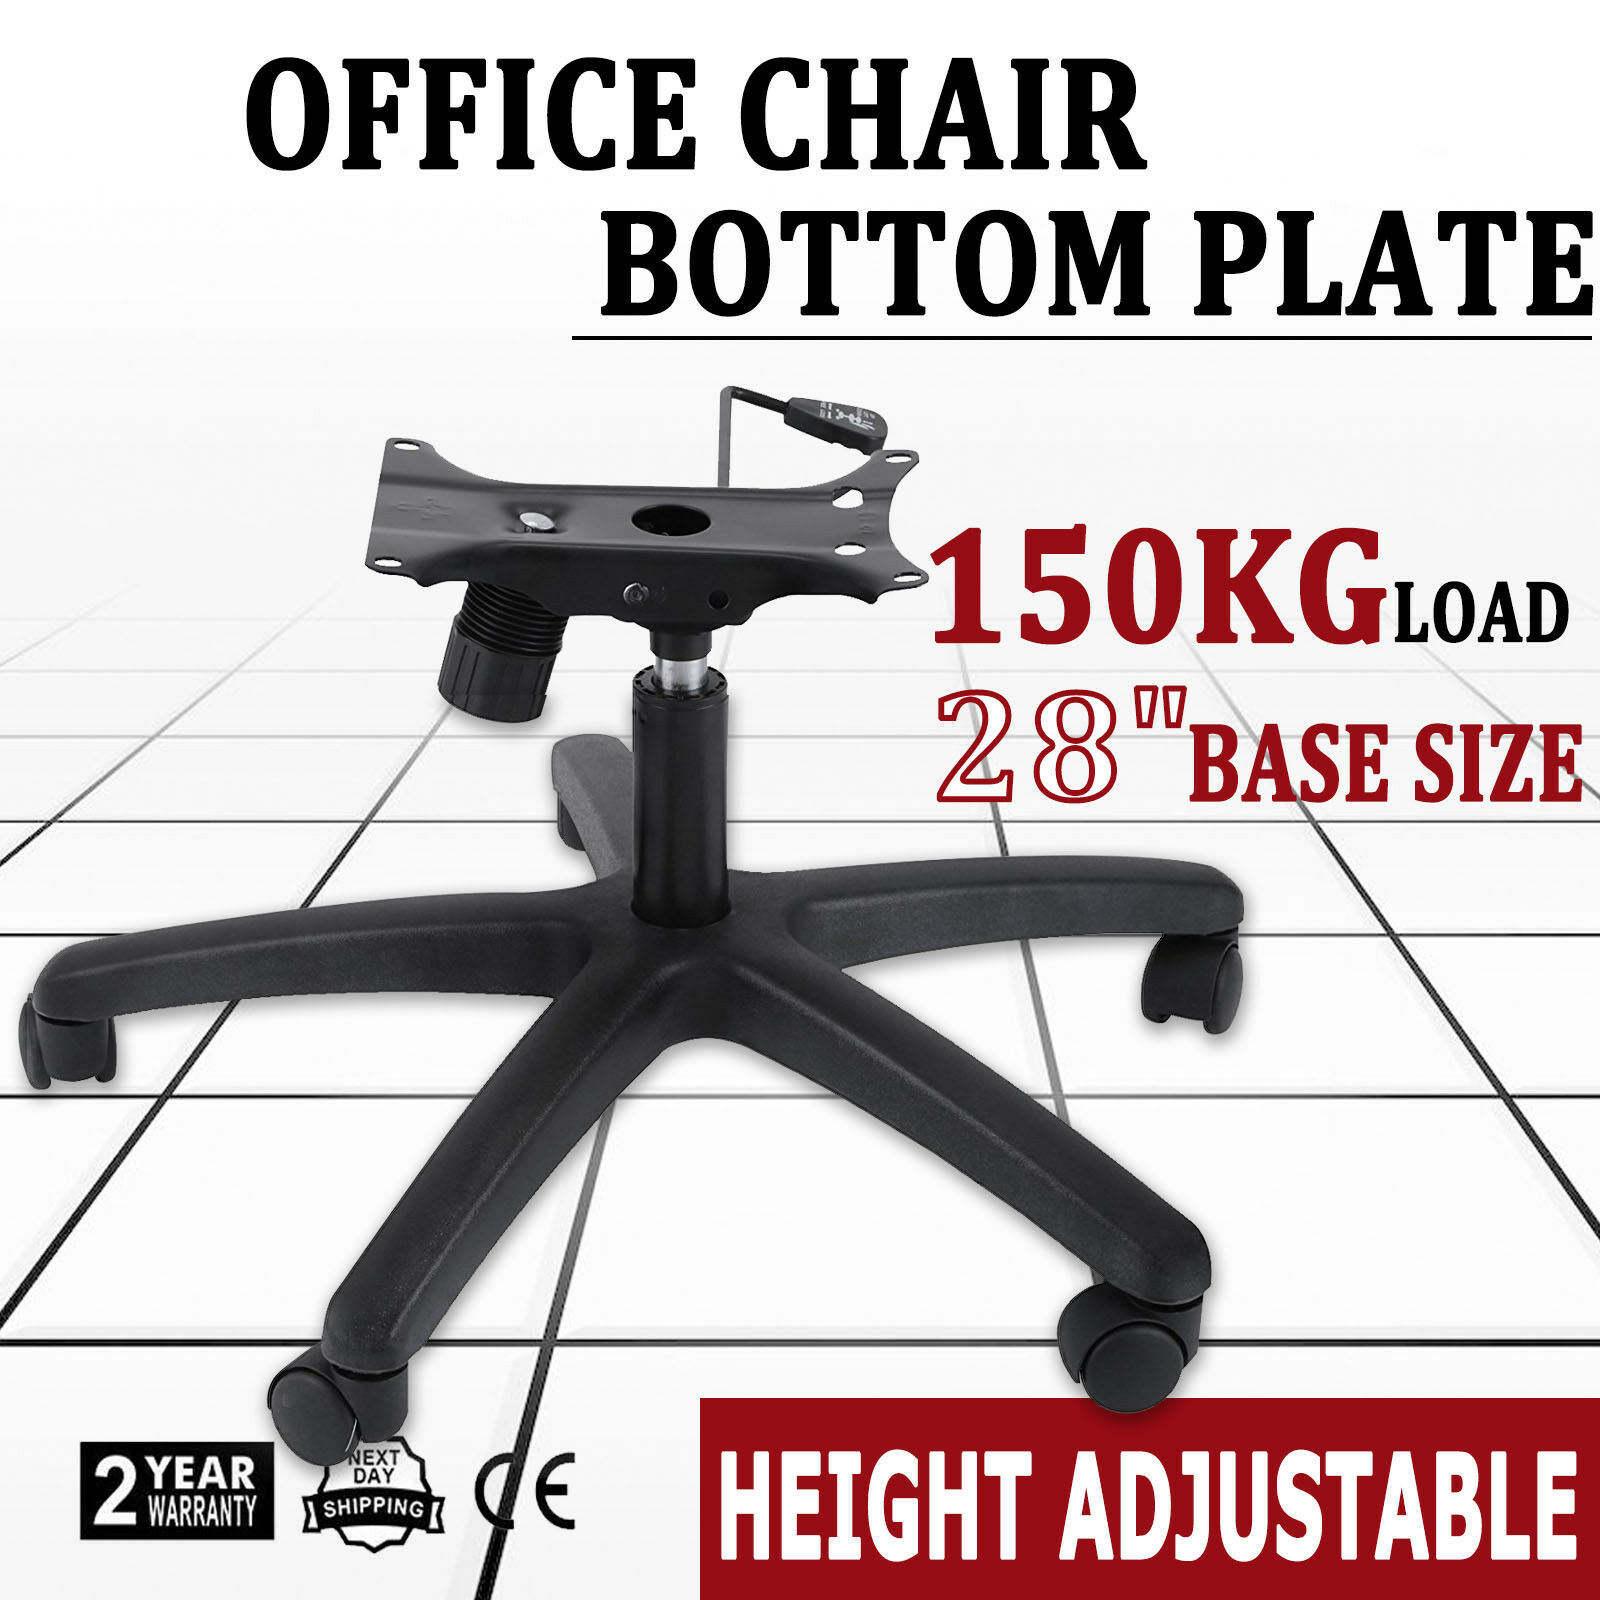 Office Chair Base 28 Inch Swivel Chair Base Heavy Duty 350 Pounds Replacement 1 of 12Only 0 available See More  sc 1 st  PicClick & OFFICE CHAIR Base 28 Inch Swivel Chair Base Heavy Duty 350 Pounds ...